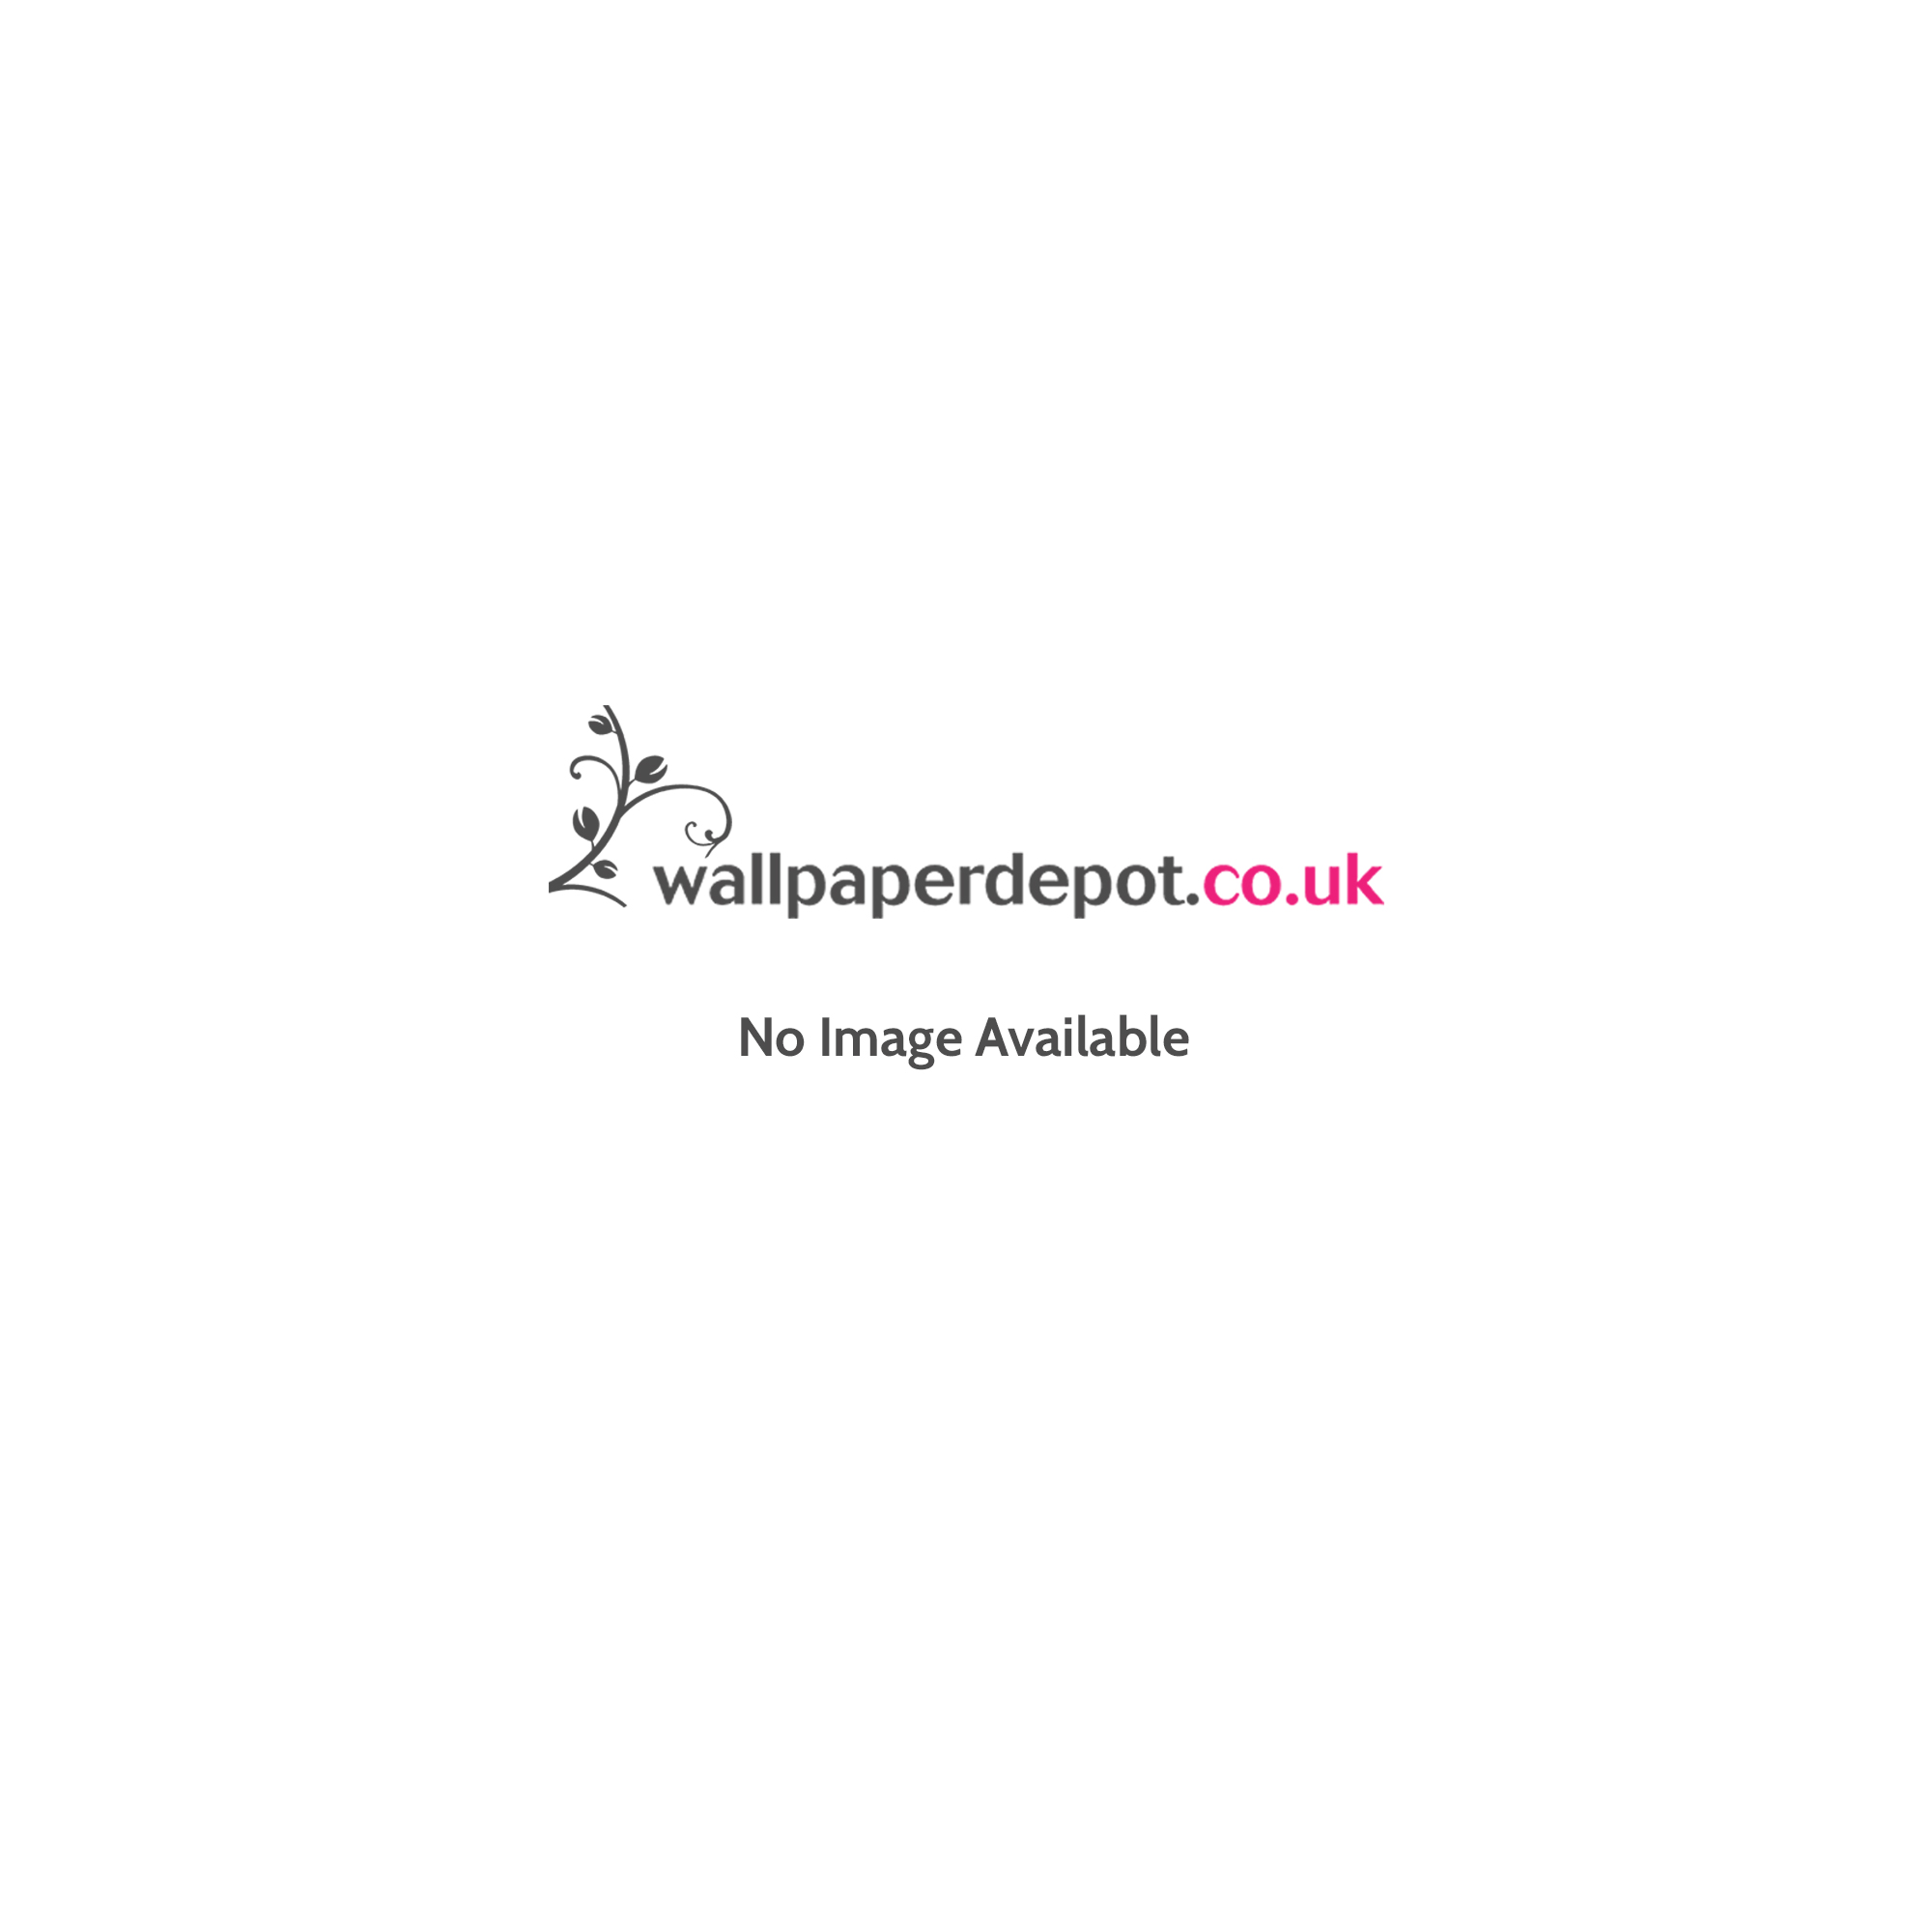 Versace Greek Key Gold Luxury Top Quality Branded Wallpaper 93523-2